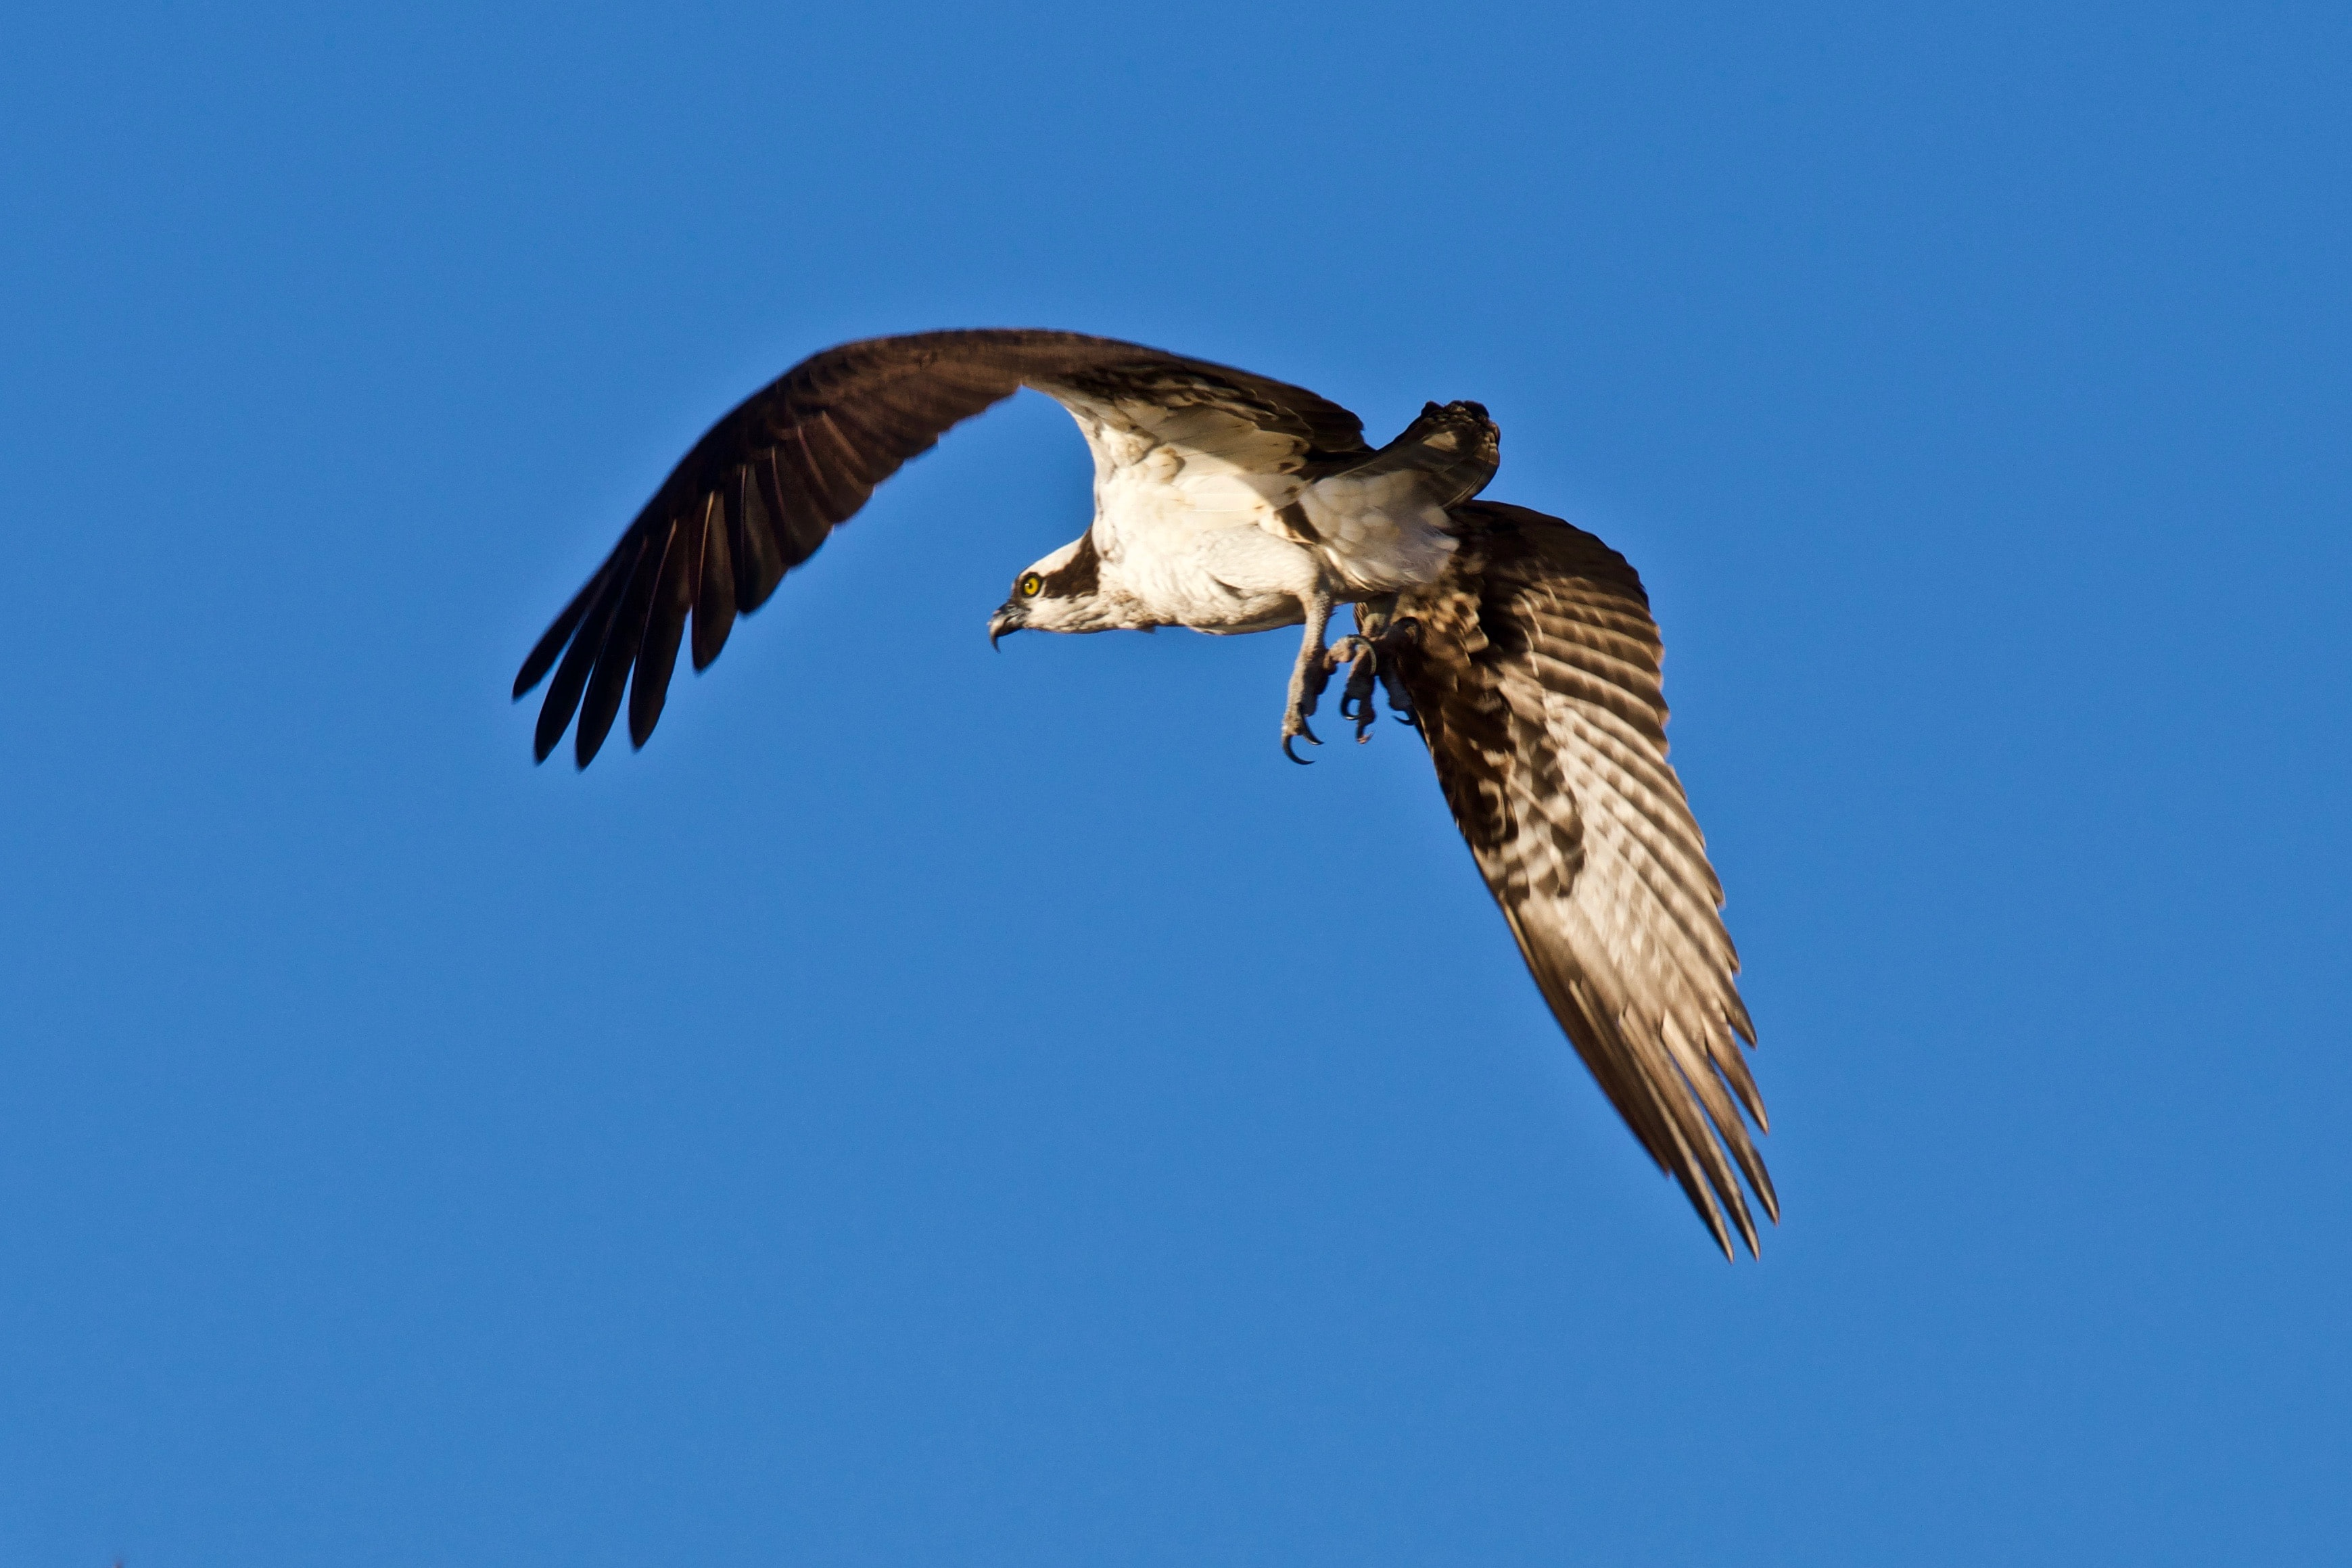 short-beak bird flying in the sky during daytime